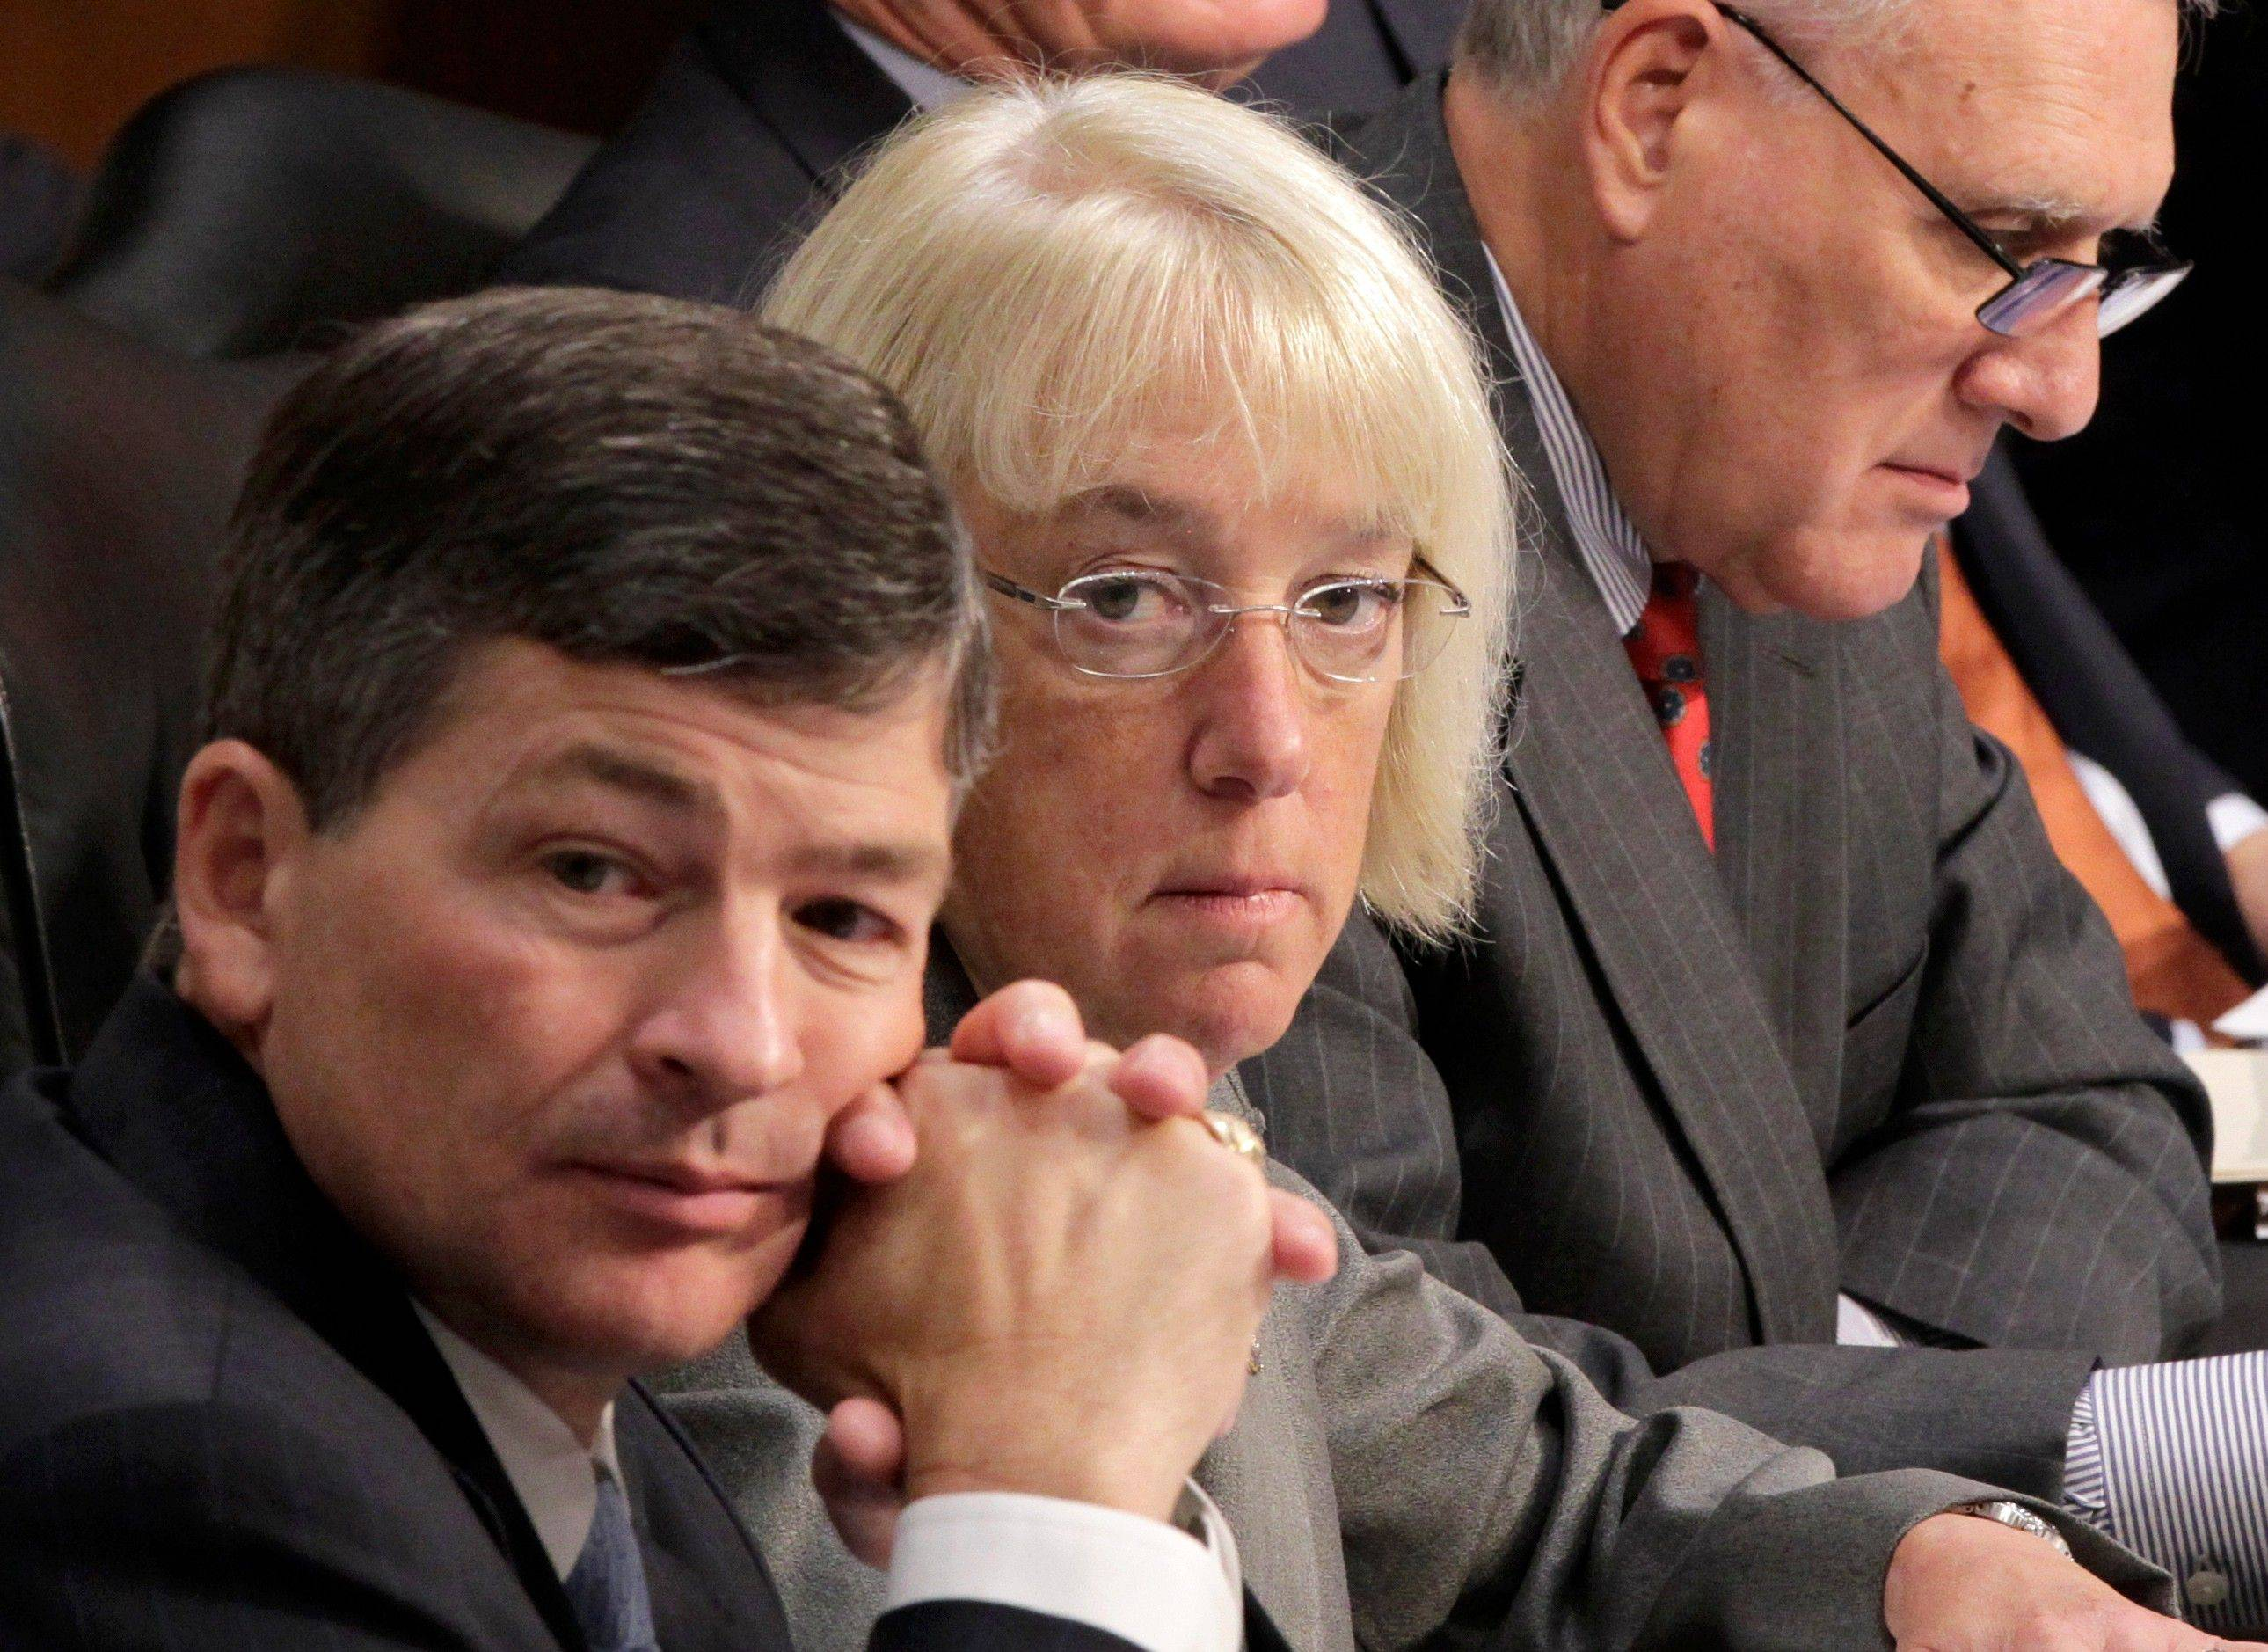 Supercommittee co-chairs Rep. Jeb Hensarling, a Texas Republican, left, and Sen. Patty Murray, a Washington Democrat, center, seen above on Sept. 13, appear ready to admit today that the panel has failed to agree on a debt reduction plan.